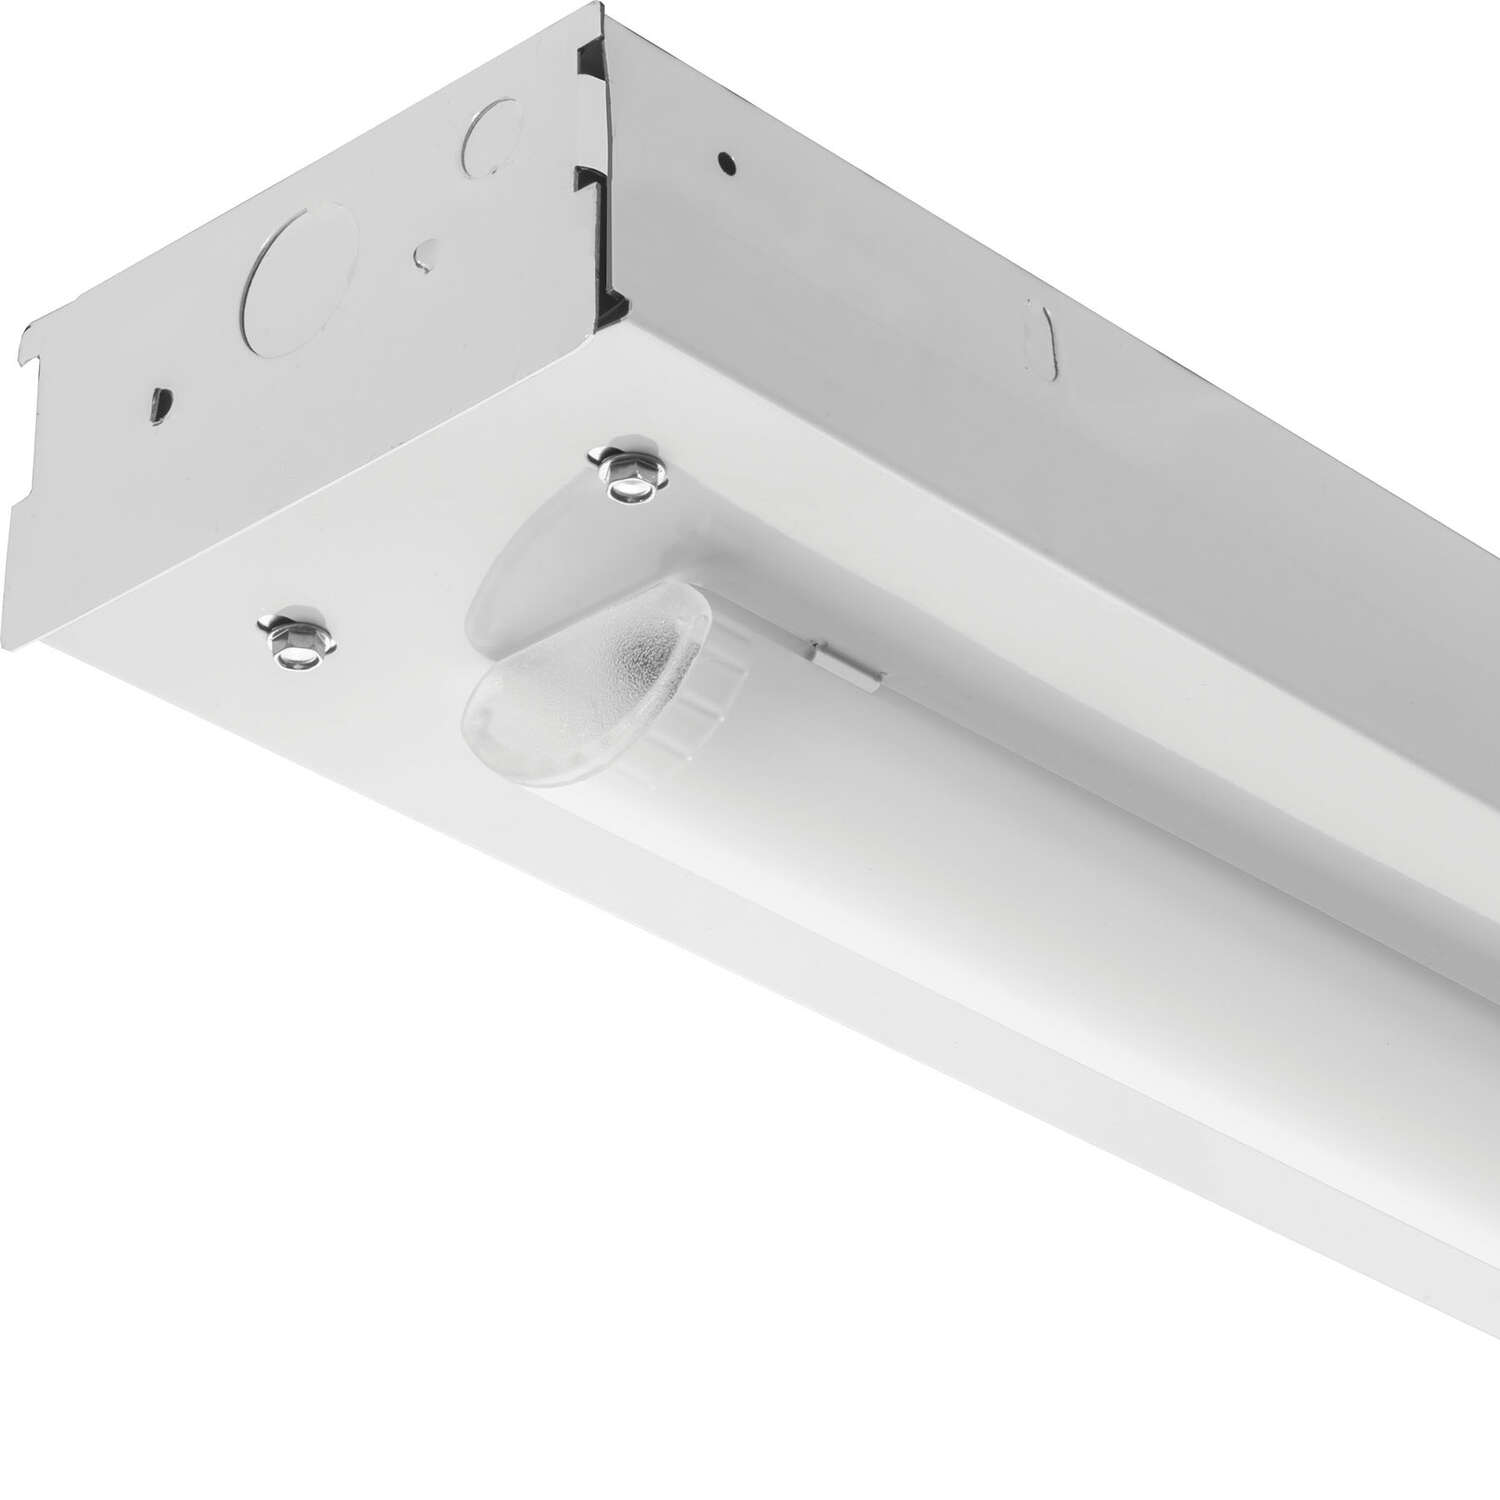 Lithonia Lighting  96 in. L White  Strip Light  Hardwired  8000 lumens